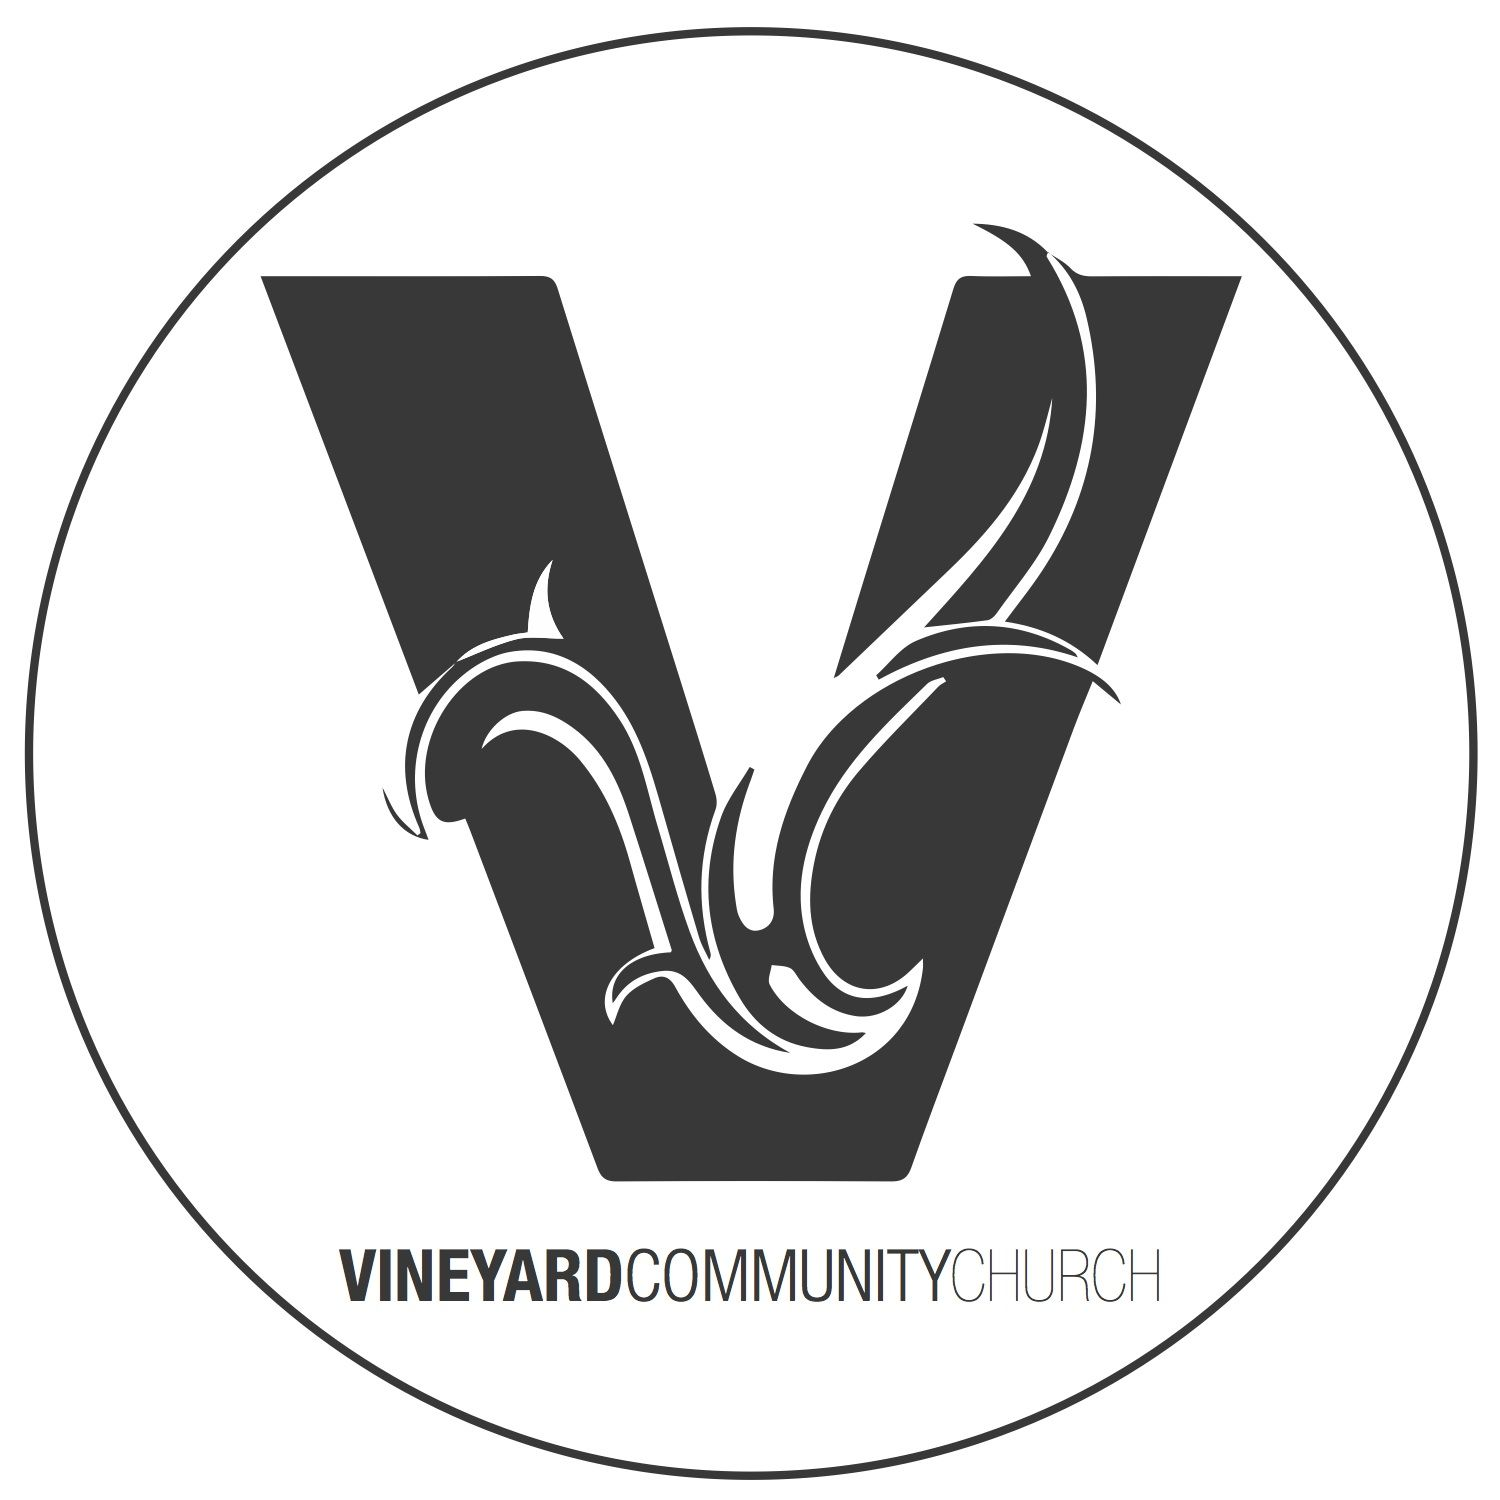 Vineyard Community Church of Marietta GA